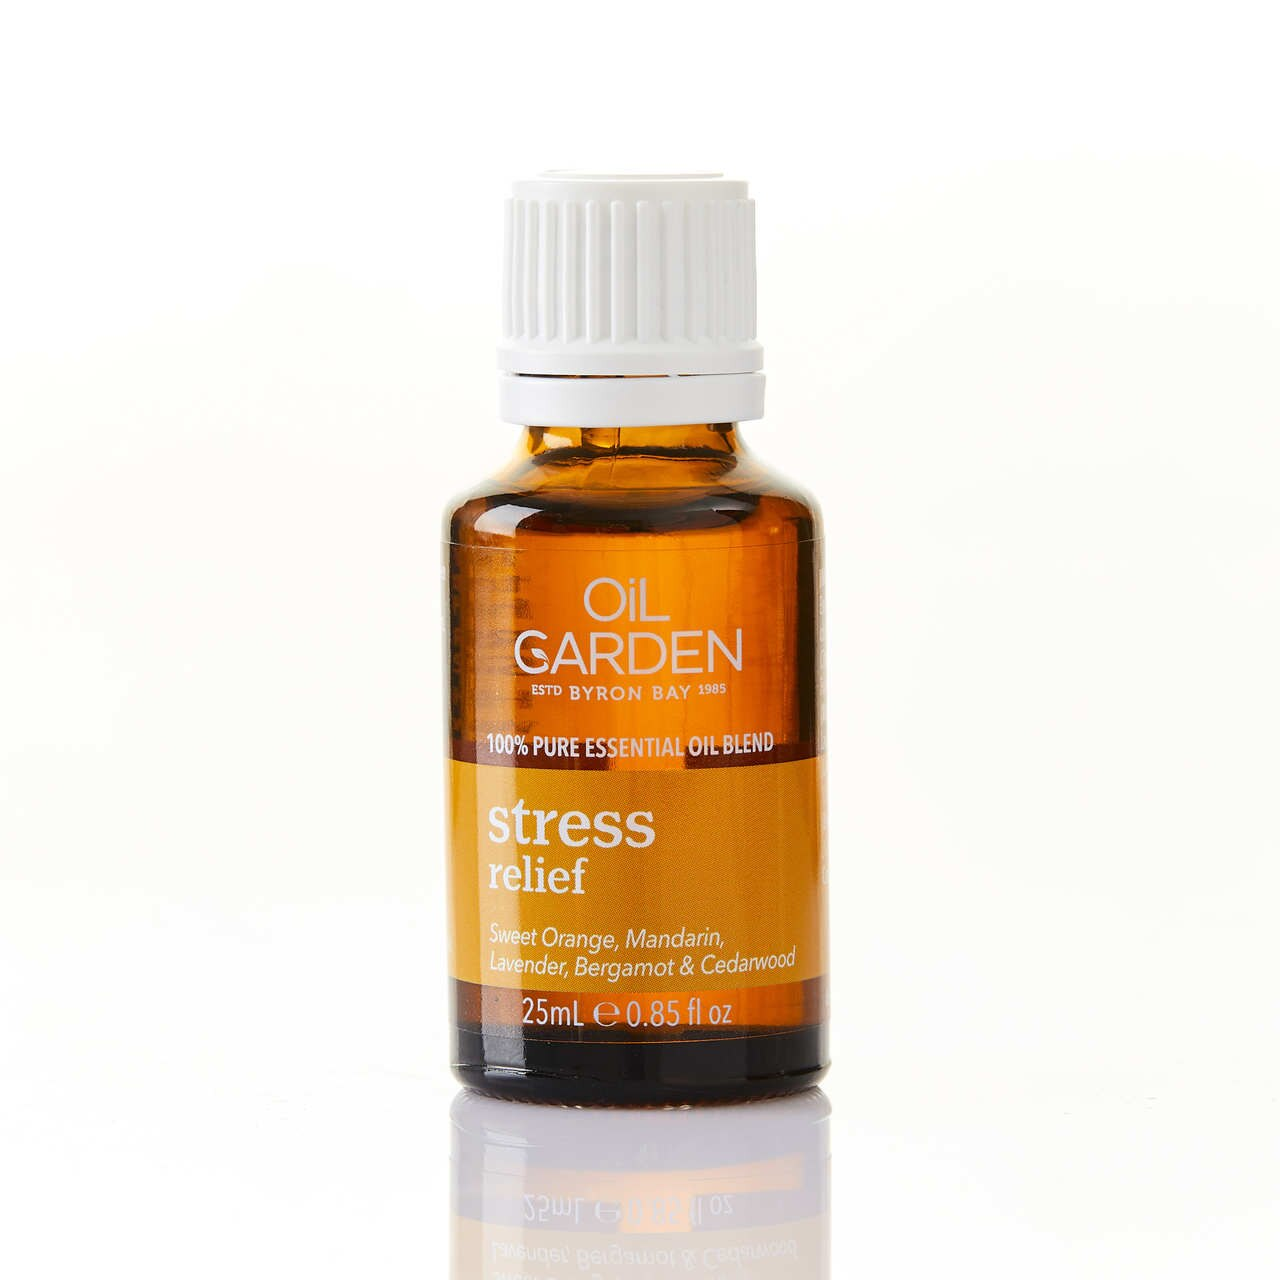 Oil Garden Stress Relief Essential Oil Blend 25mL